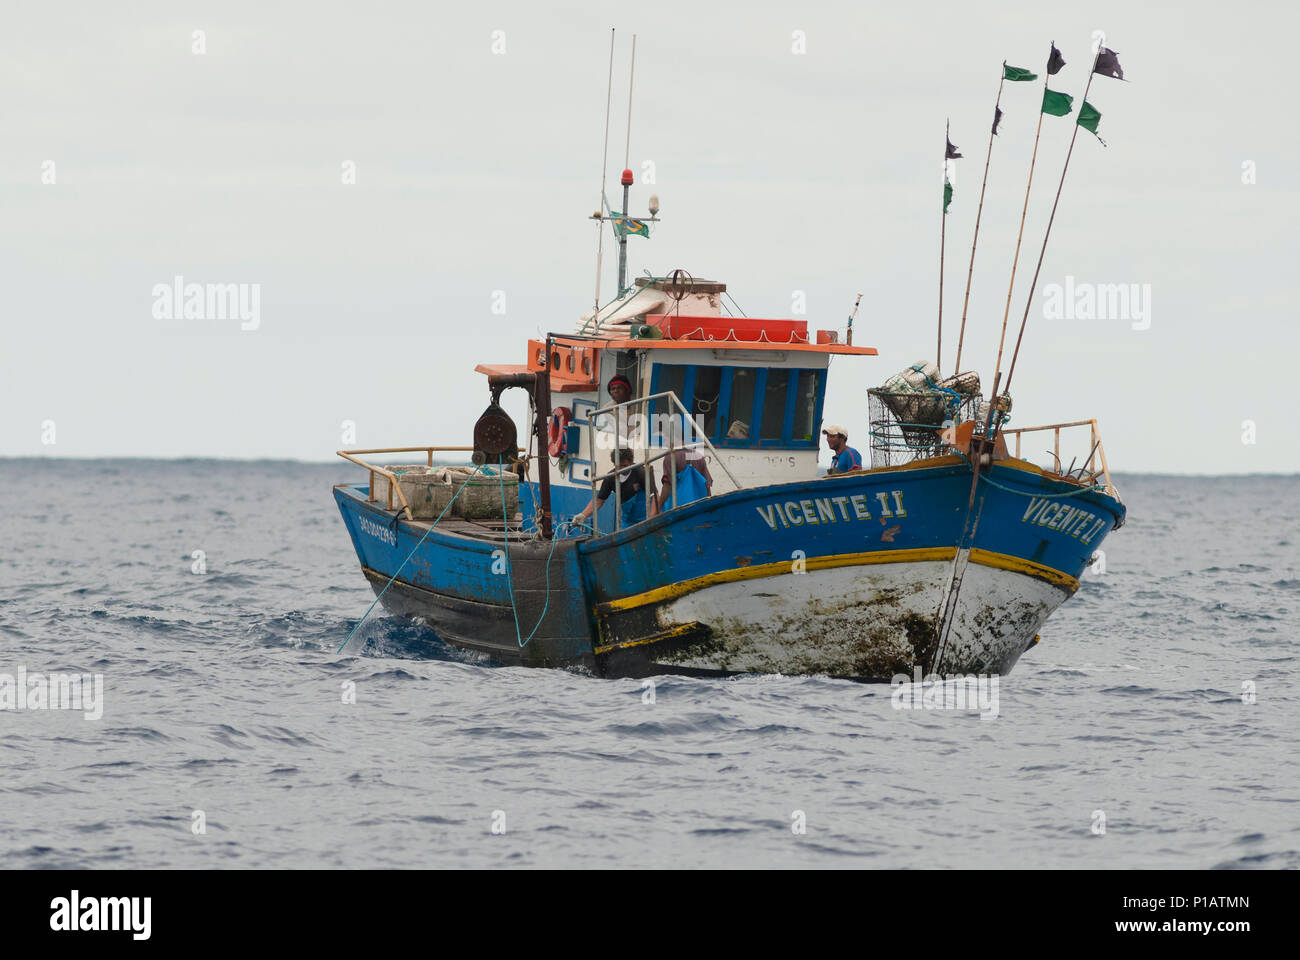 A commercial offshore longliner fishing boat off the coast of SE Brazil - Stock Image